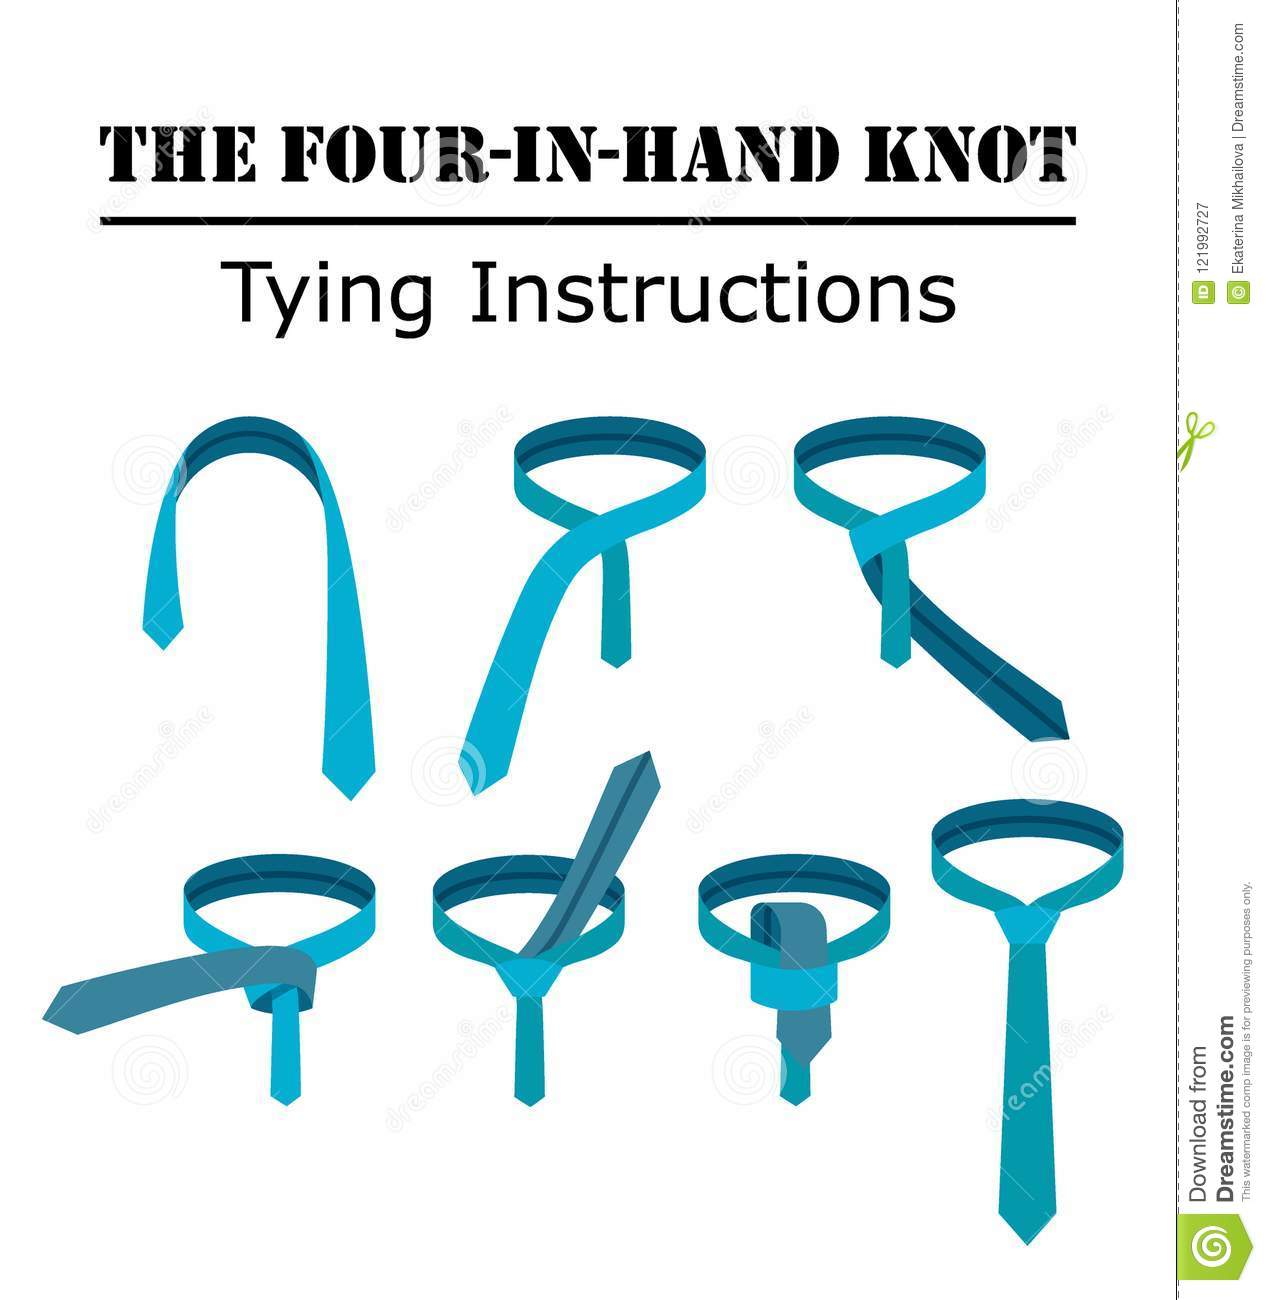 Four in hand tie knot instructions isolated on white background download comp ccuart Choice Image